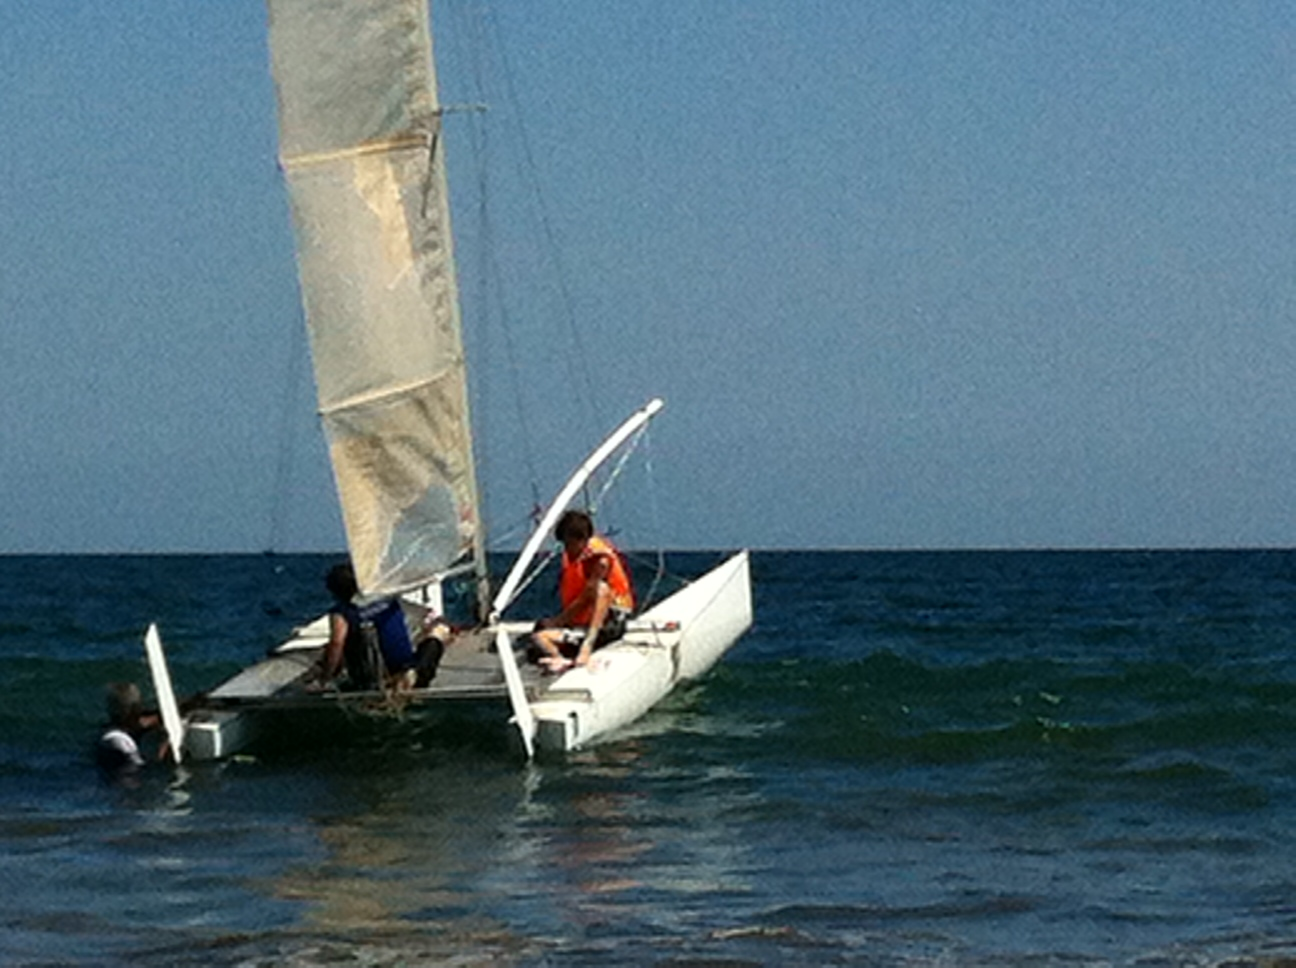 TAIPAN 16 ft KEVLAR SAILING CATAMARAN. Price $ 4.500.-